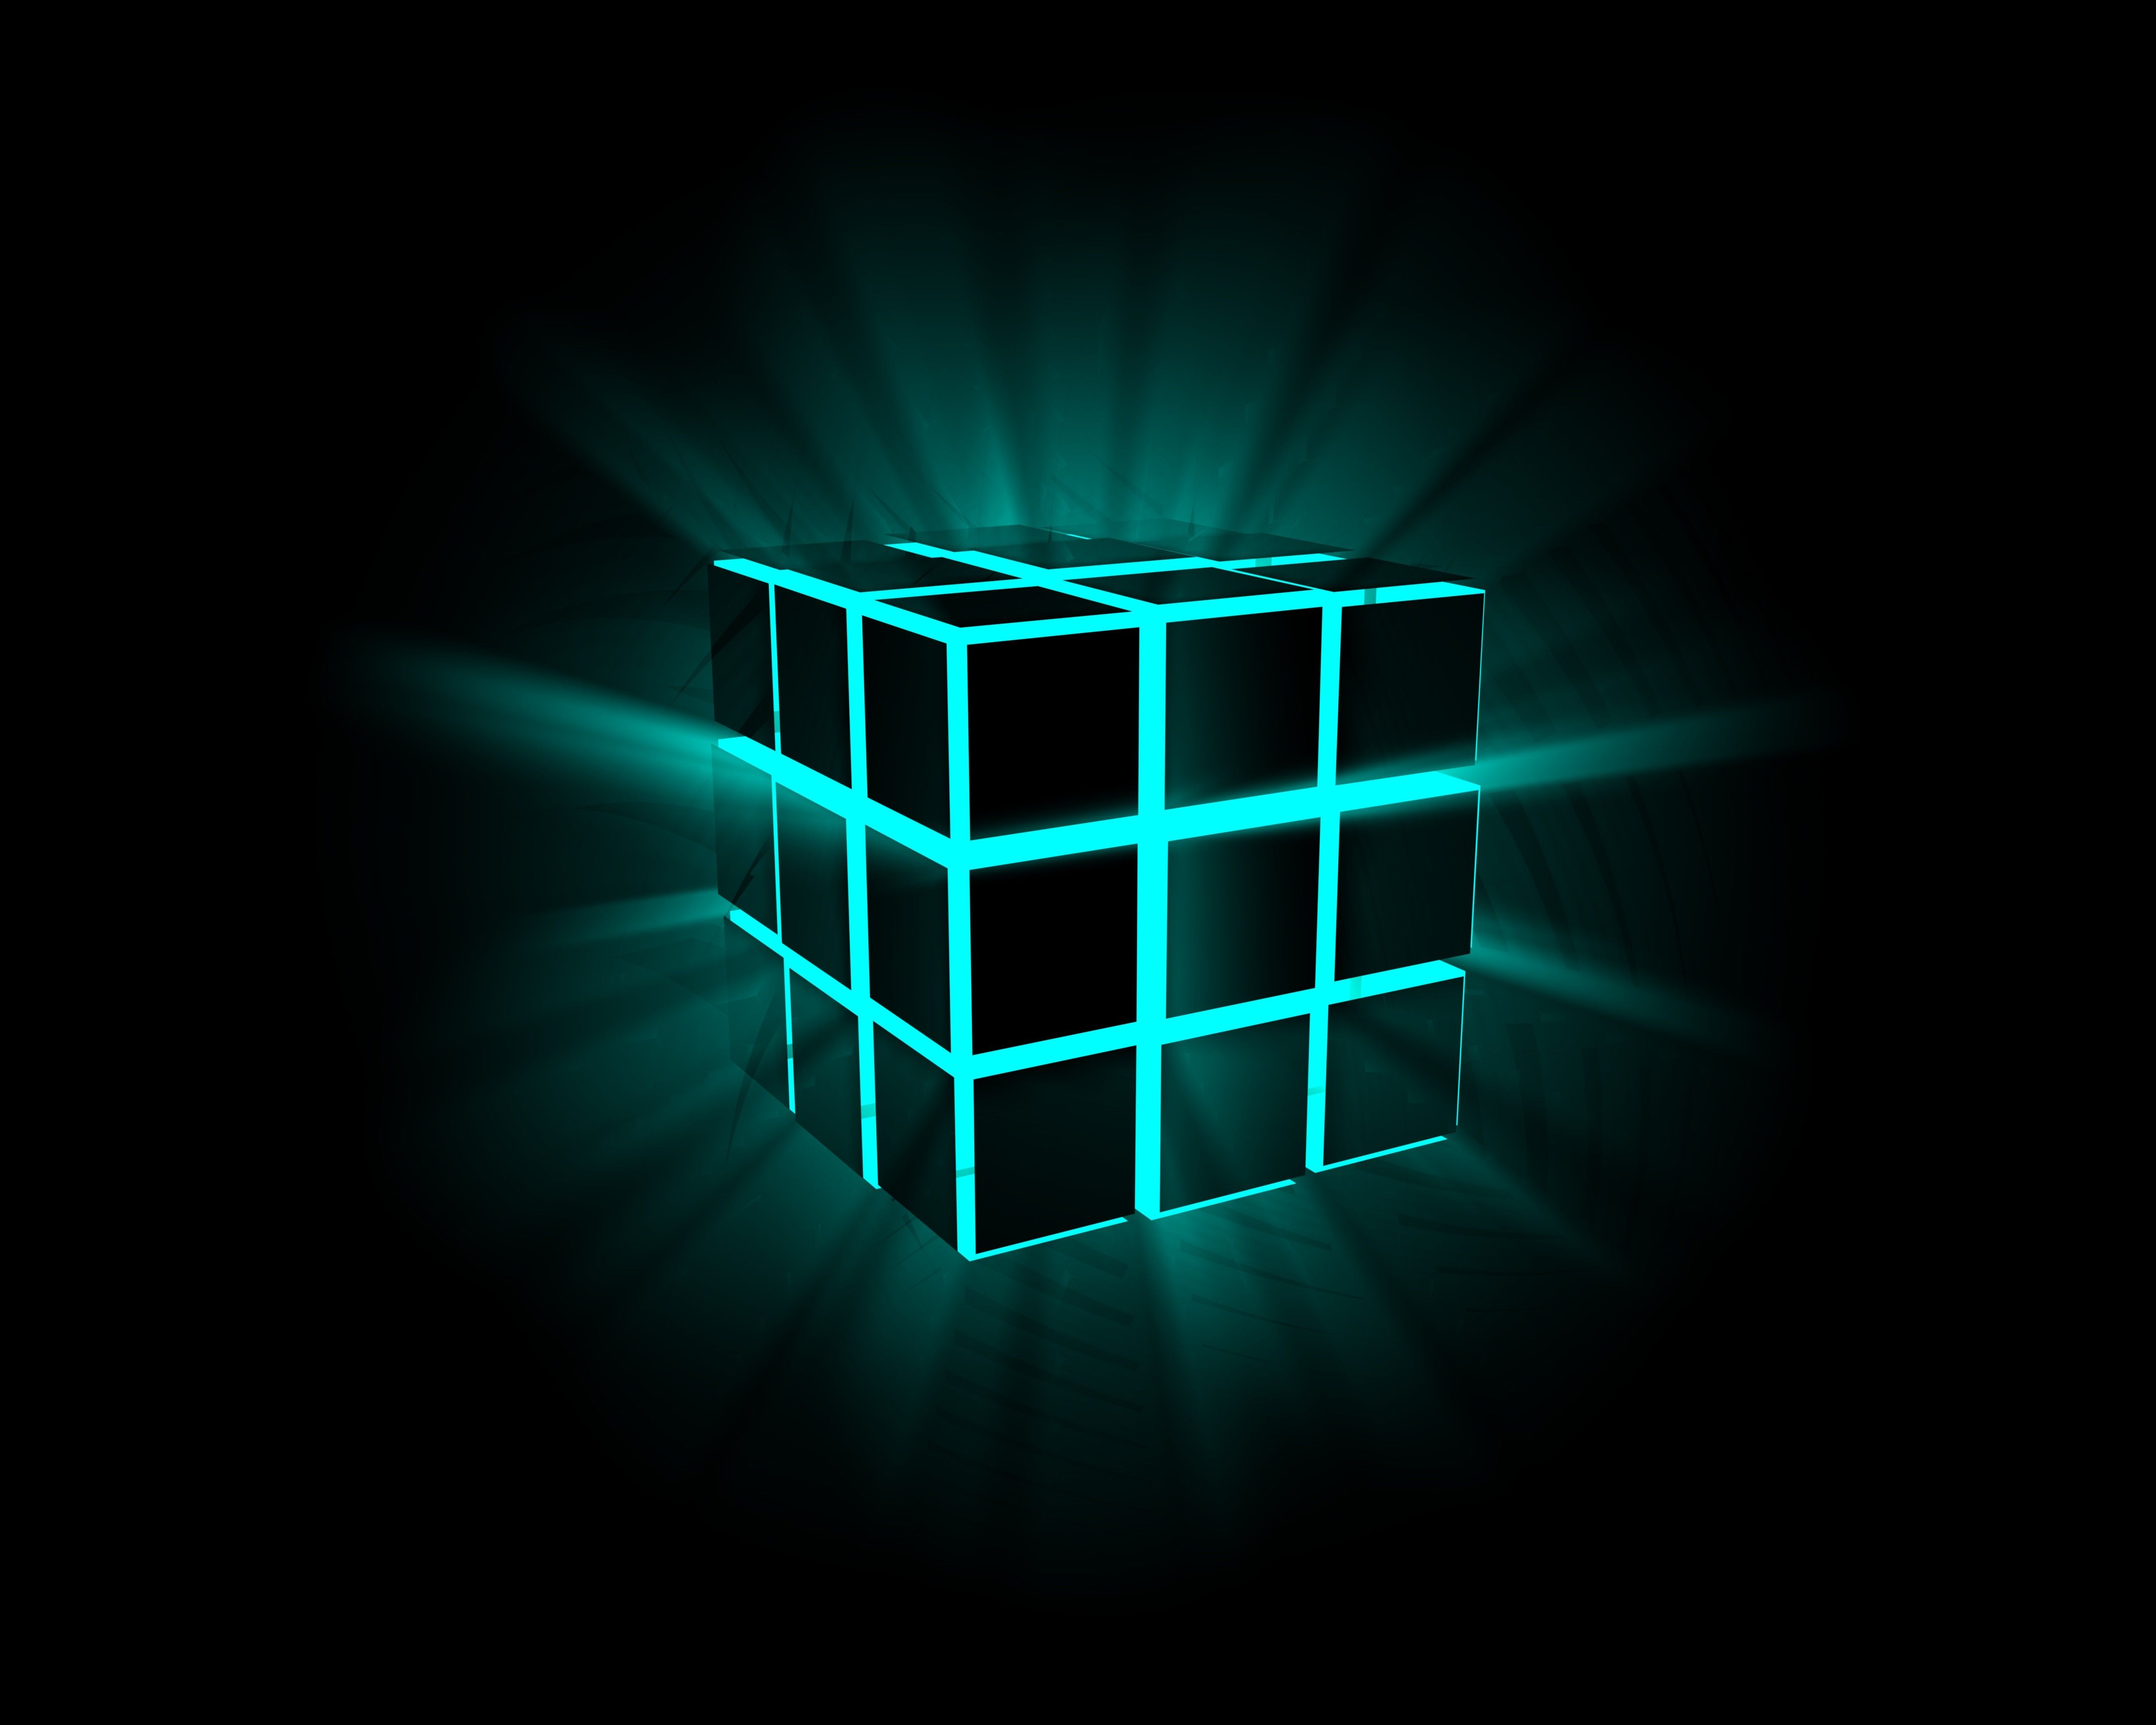 Dark Cubes Wallpapers: D Red And Dark Cubes Wallpaper Free IPhone Wallpapers